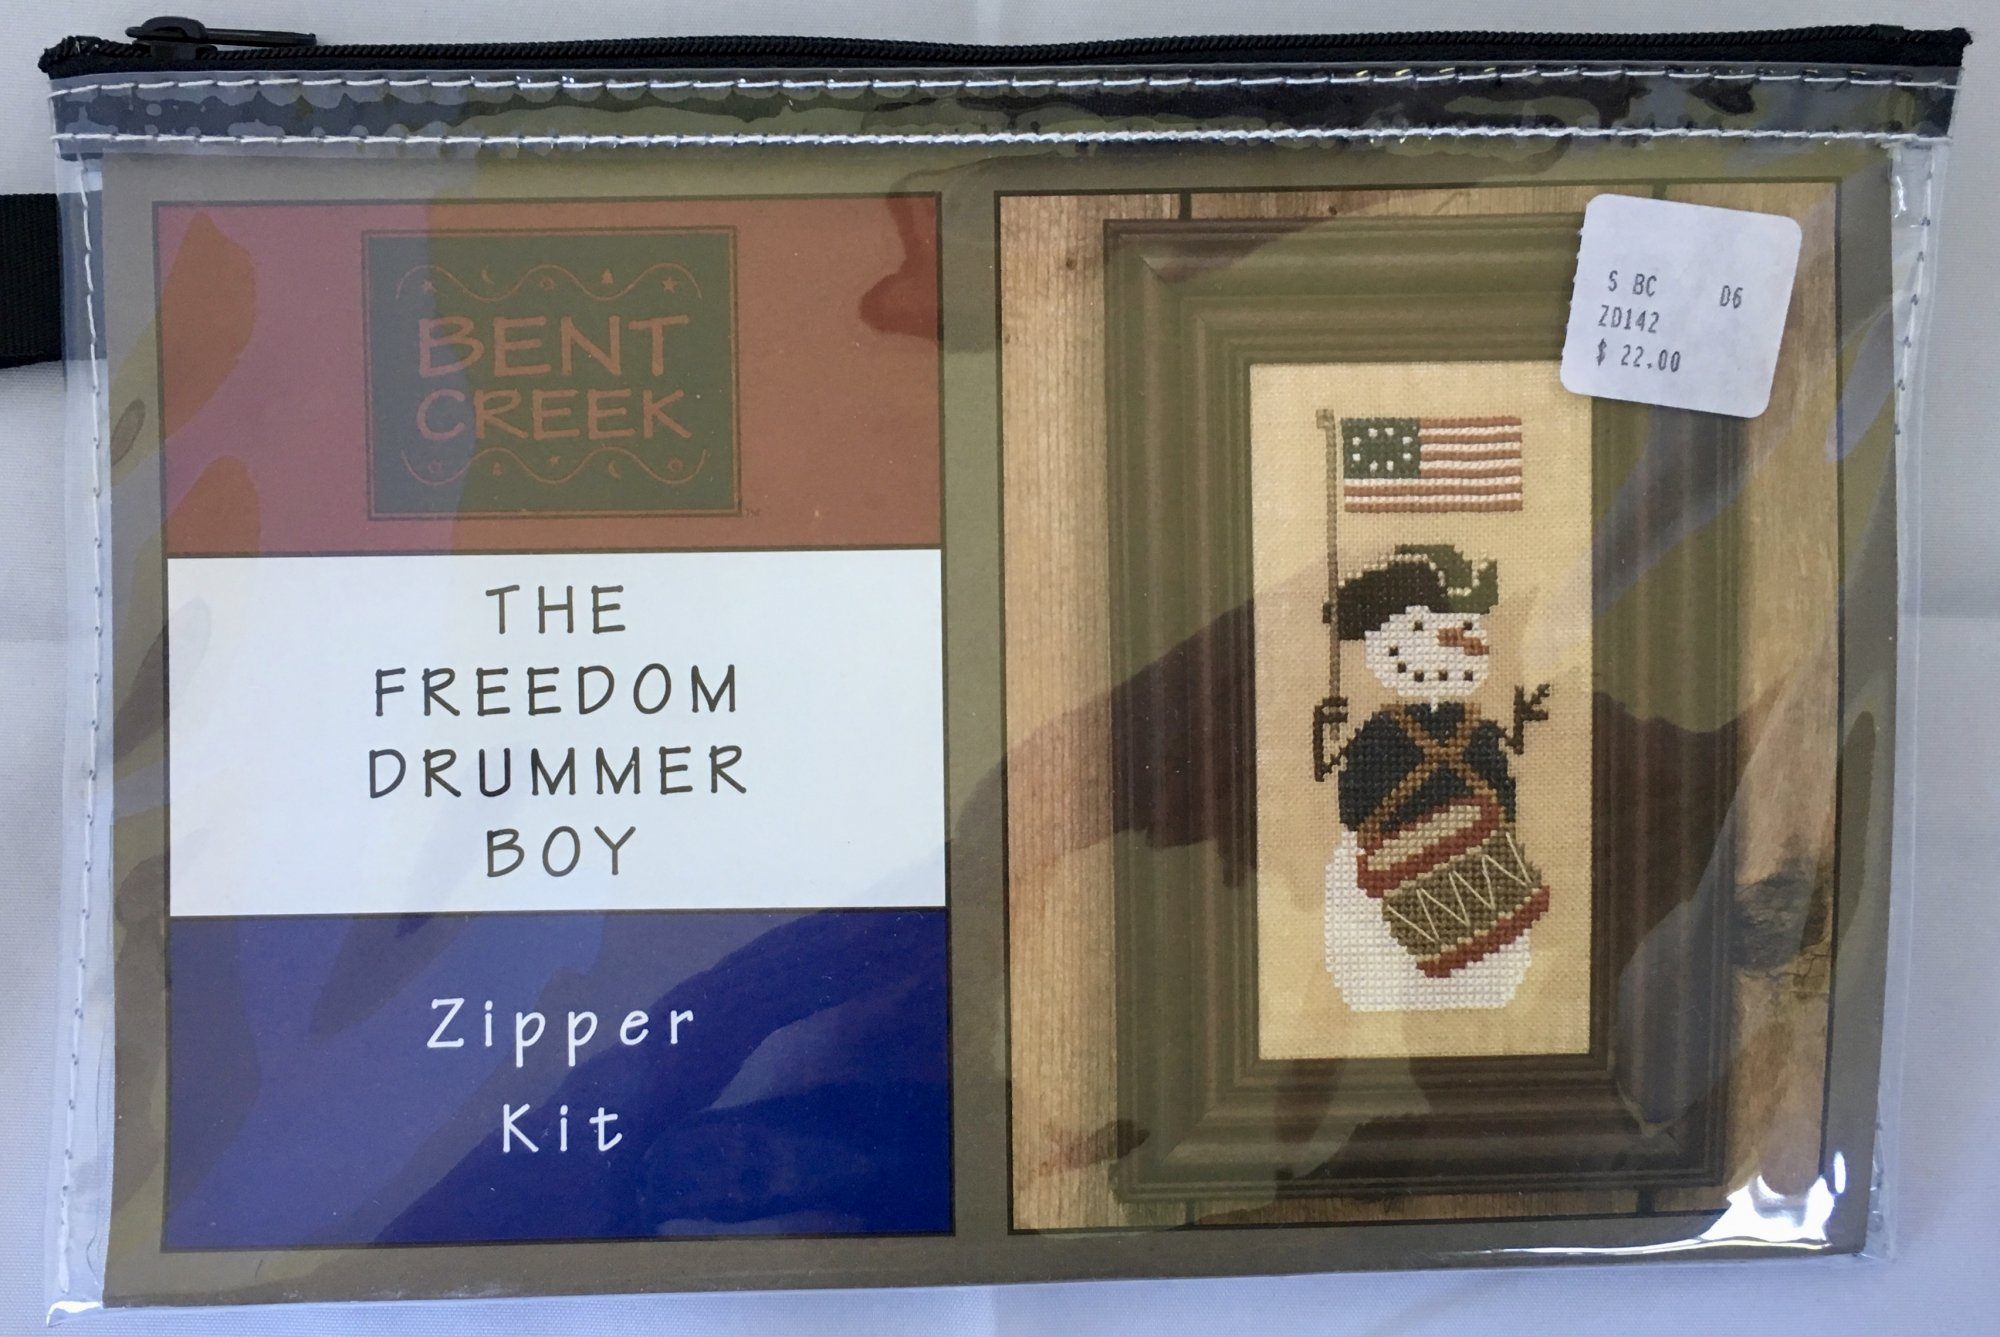 Bent Creek: The Freedom Drummer Boy Zipper Kit